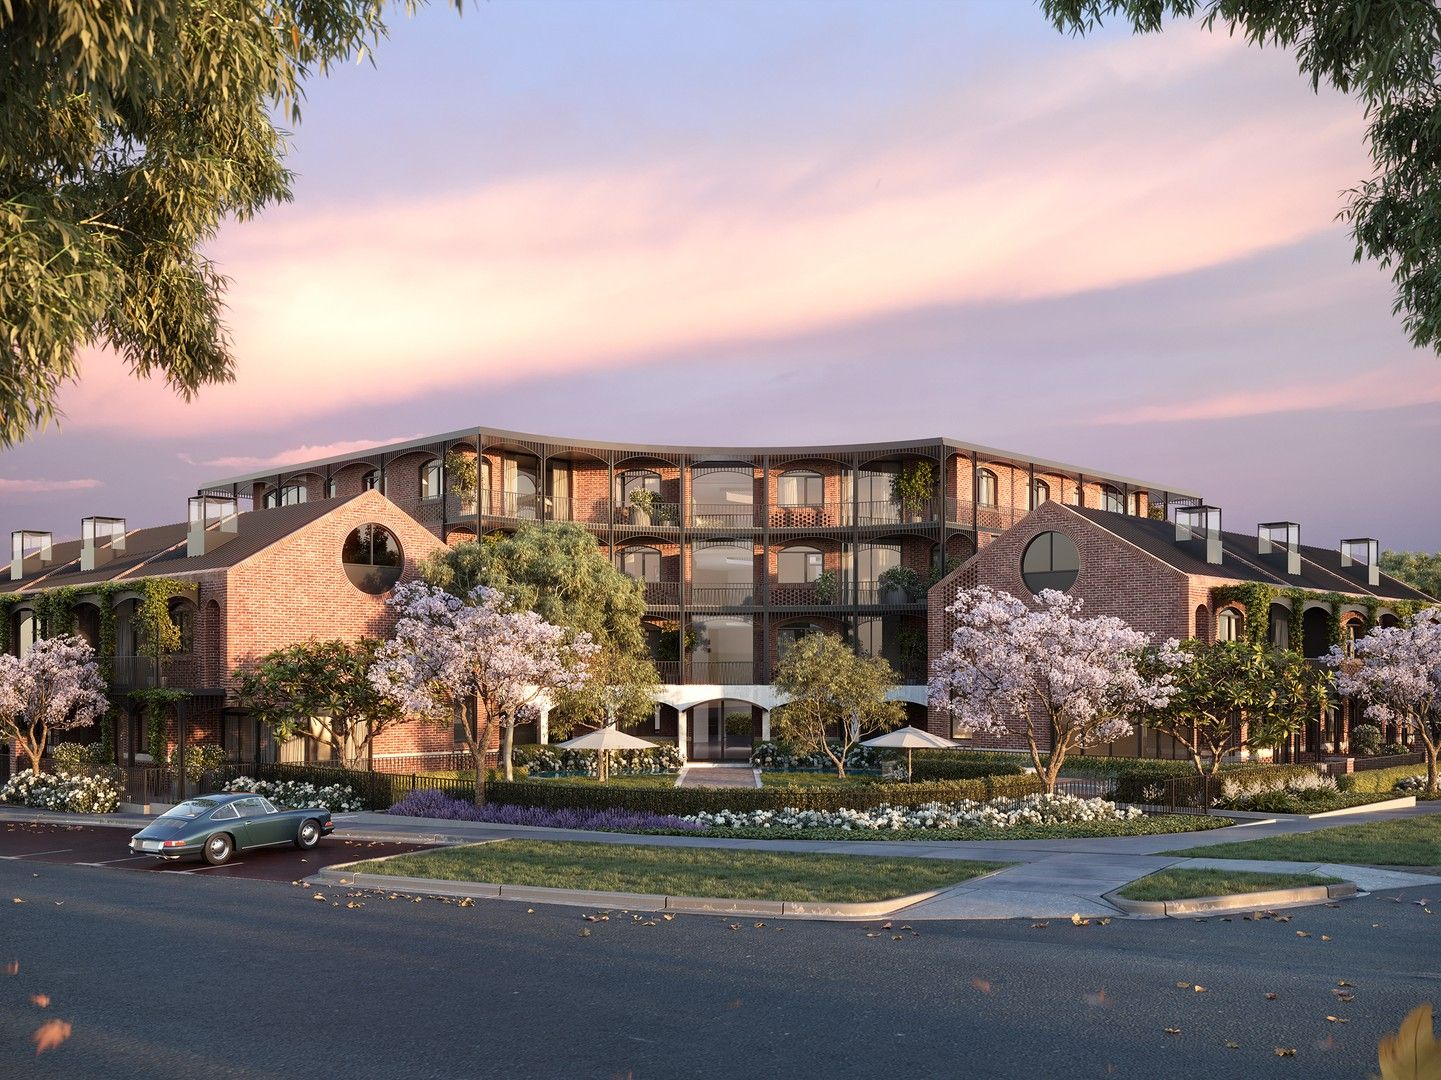 2 bedrooms New Apartments / Off the Plan in 13/7 Field Street MOUNT LAWLEY WA, 6050